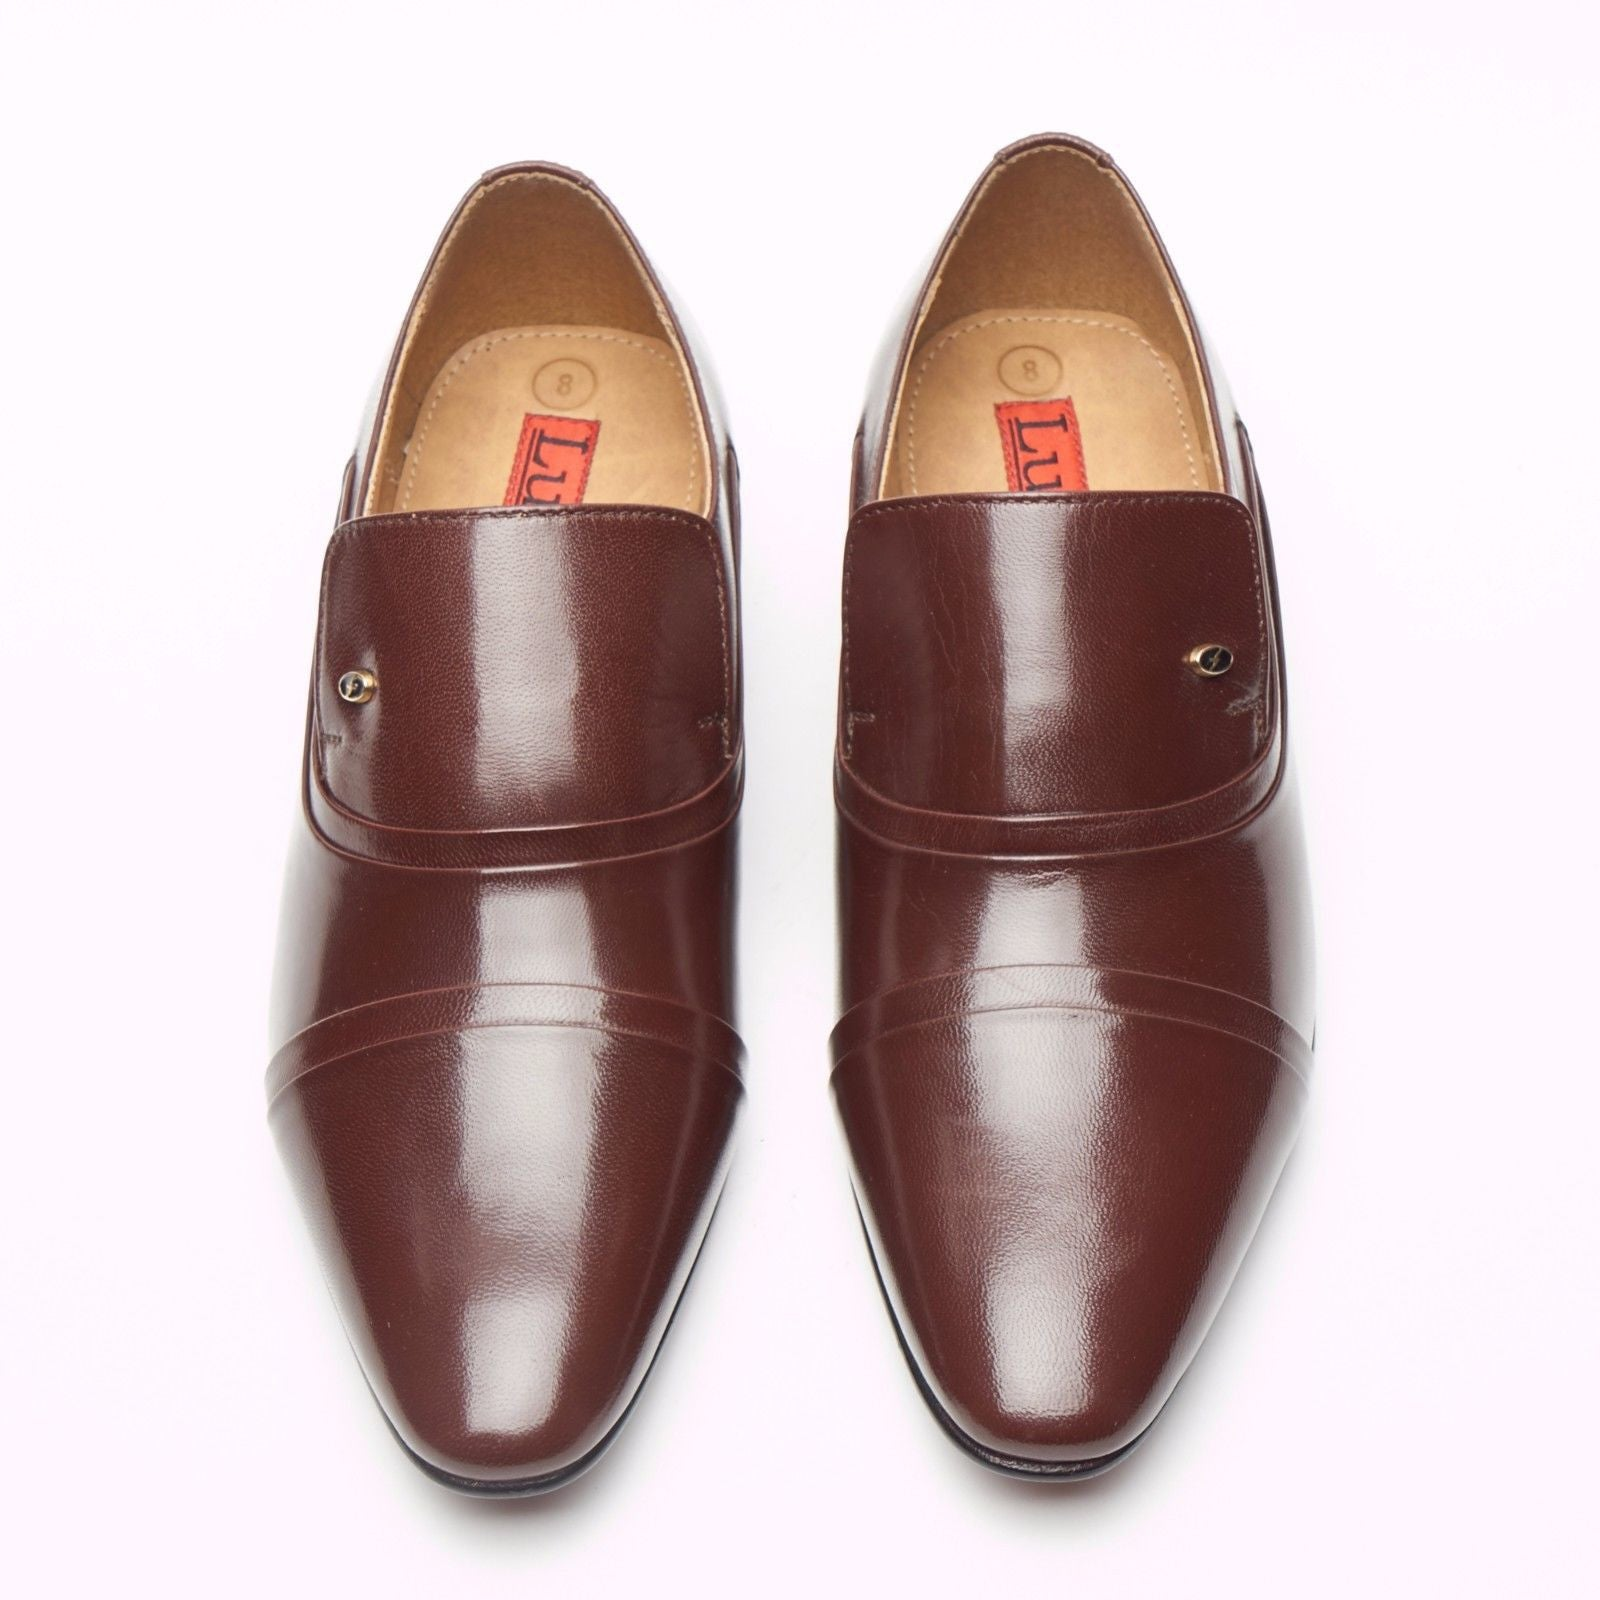 Mens Leather Spanish Shoes - 33450